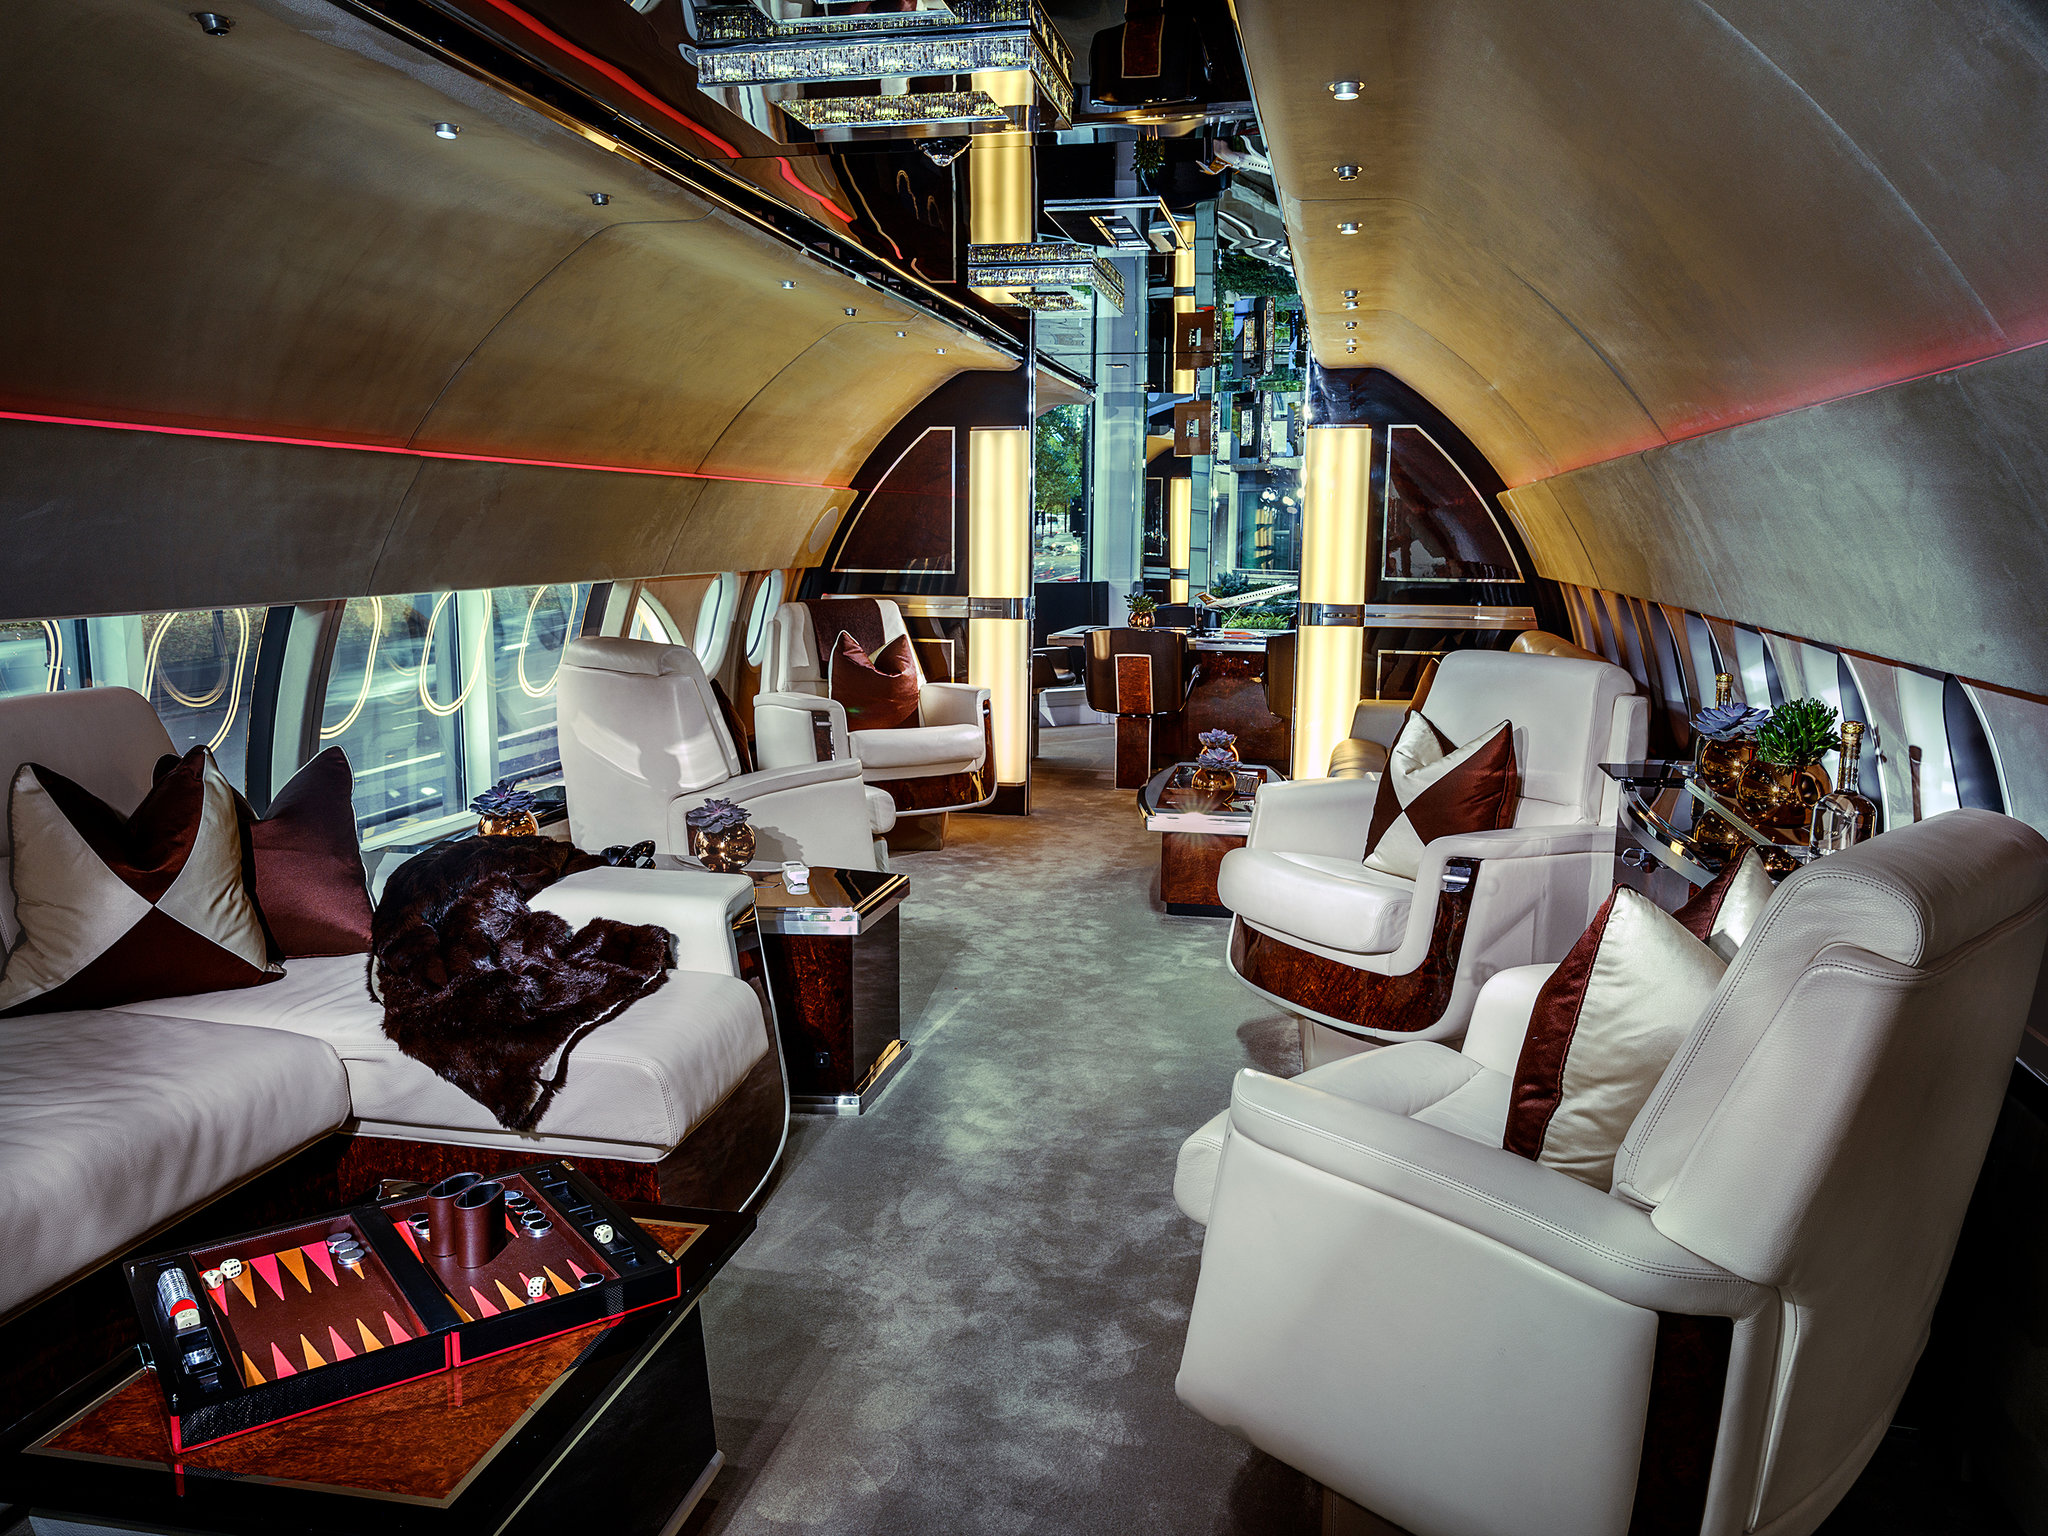 Selling Airborne Opulence to the Upper Upper Upper Class